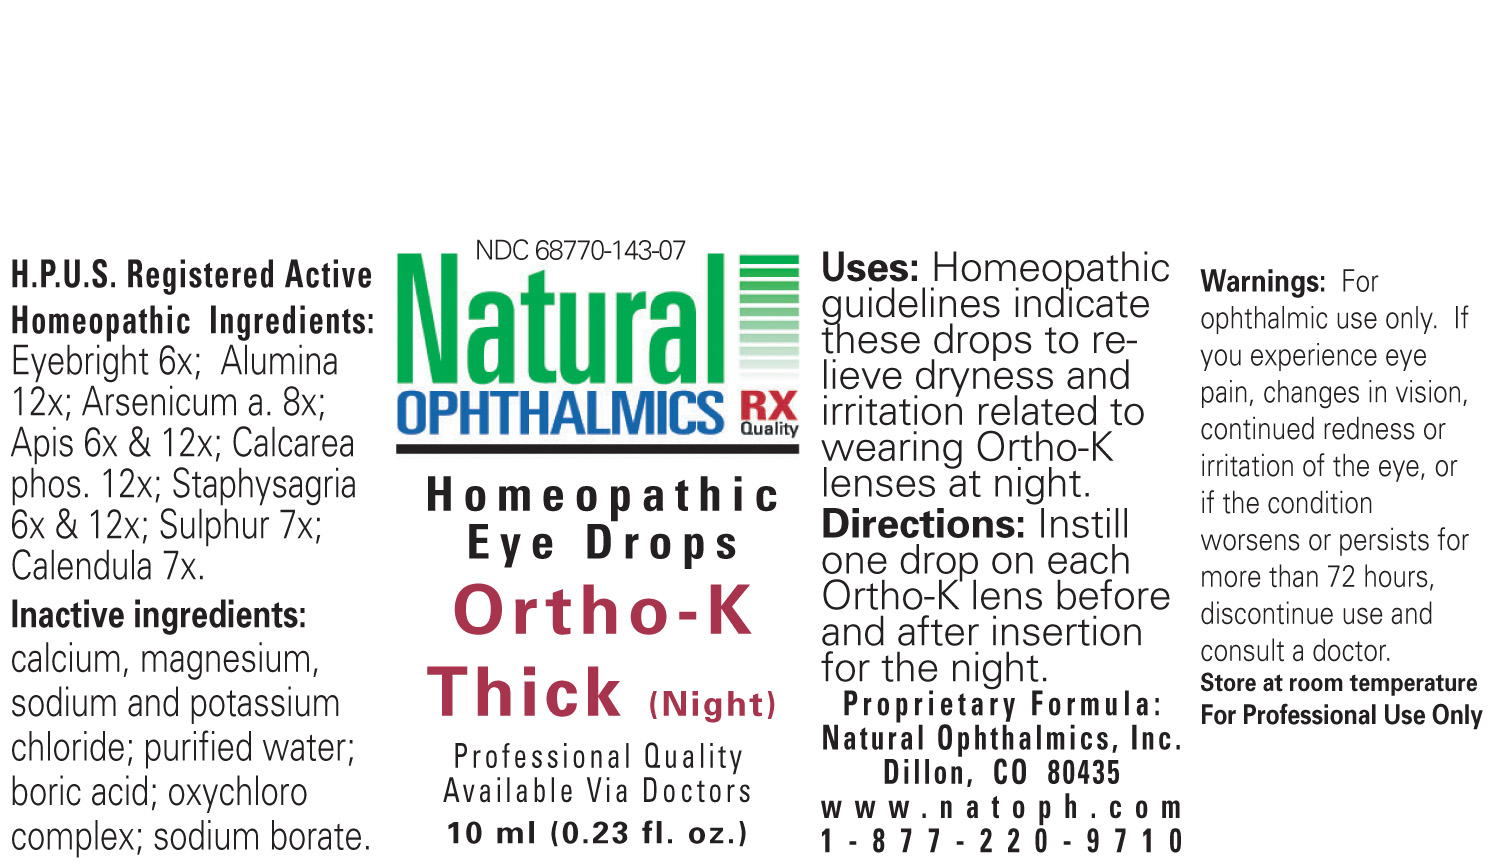 Ortho-k Thick (Night) (Euphrasia Stricta, Aluminum Oxide, Arsenic Trioxide, Apis Mellifera, Tribasic Calcium Phosphate, Delphinium Staphisagria Seeds, Sulphur, Calendula Officinalis Flowering Top) Liquid [Natural Ophthalmics, Inc]